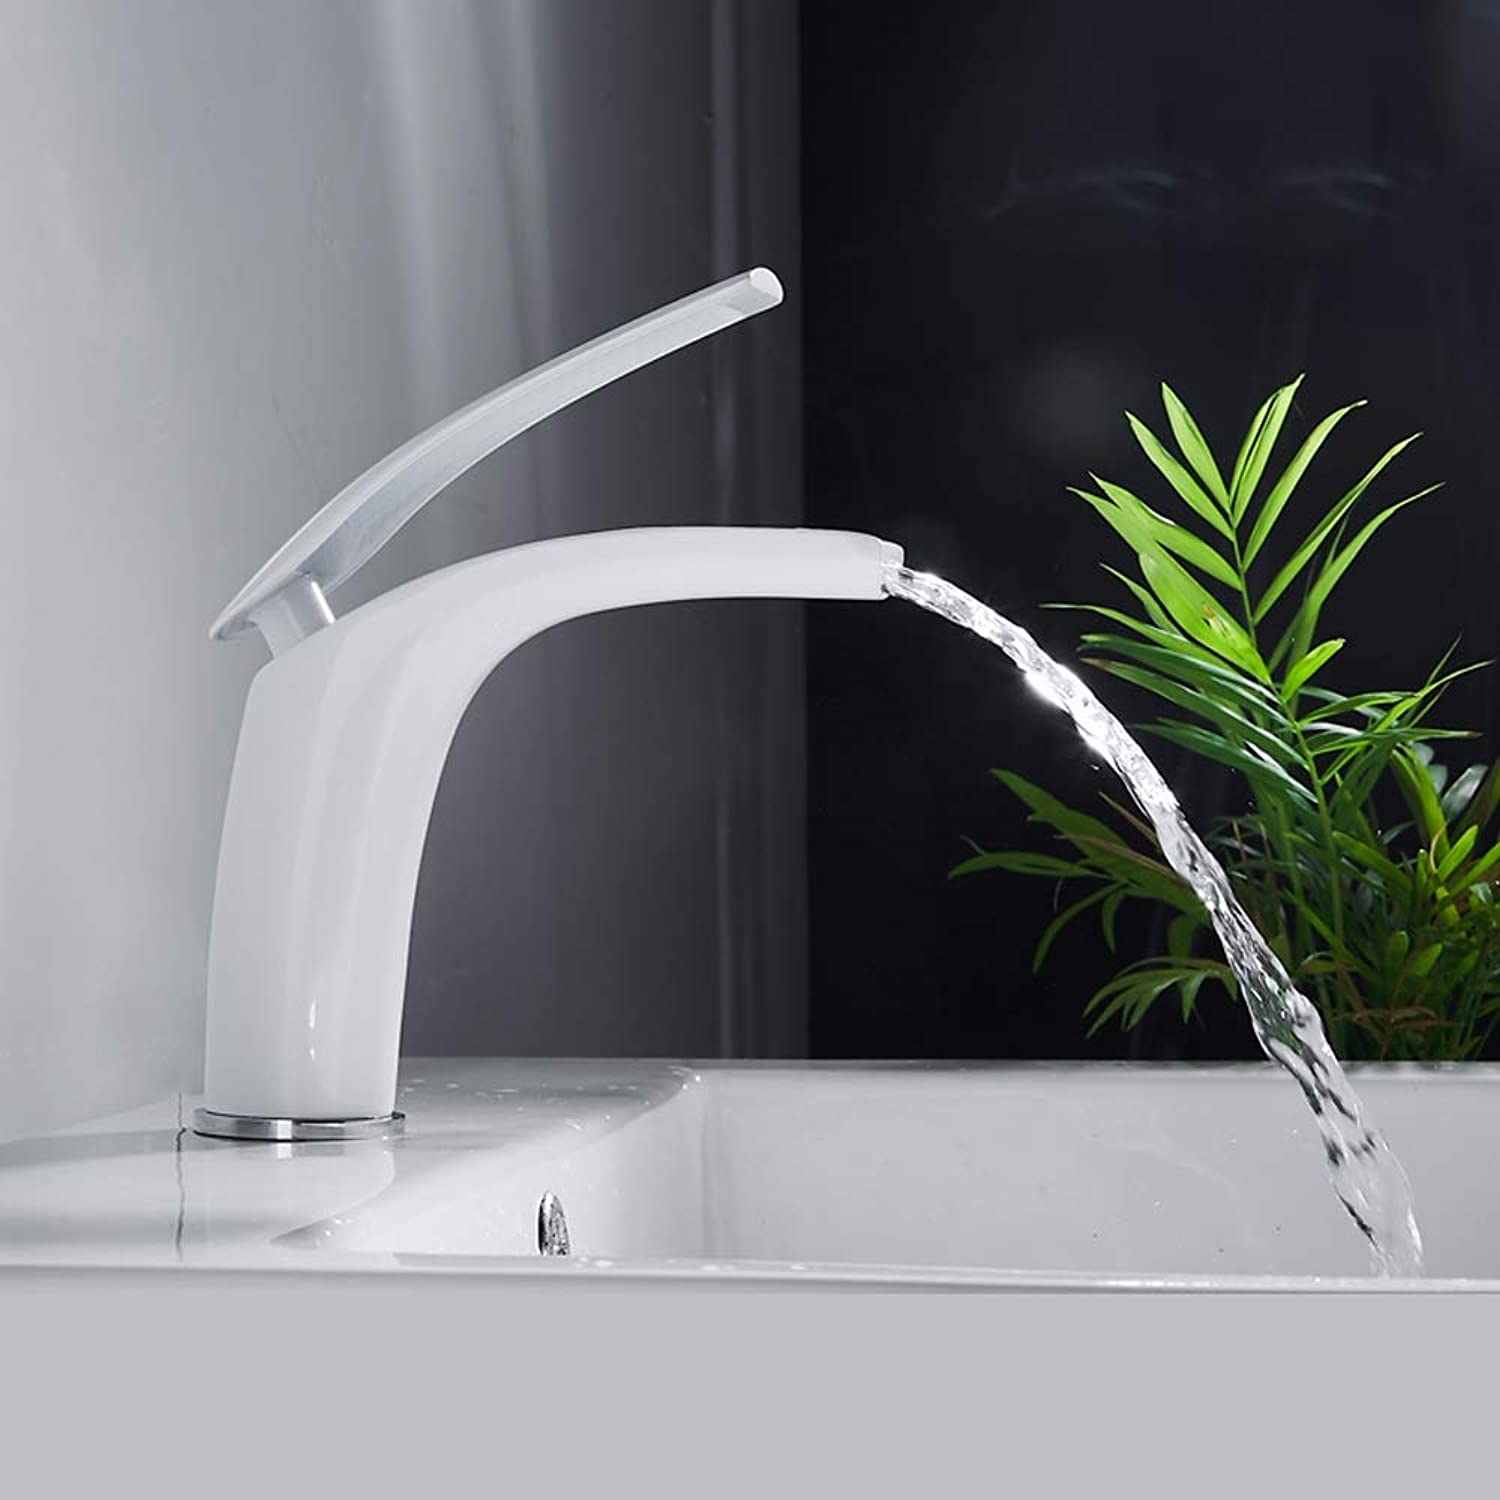 AXWT Waterfall Water-tap All Bronze Above Counter Basin Wash Your Face Basin Bathroom Cabinet Faucet Bathroom Nordic White Paint Single Hole Taps (Size   Short)